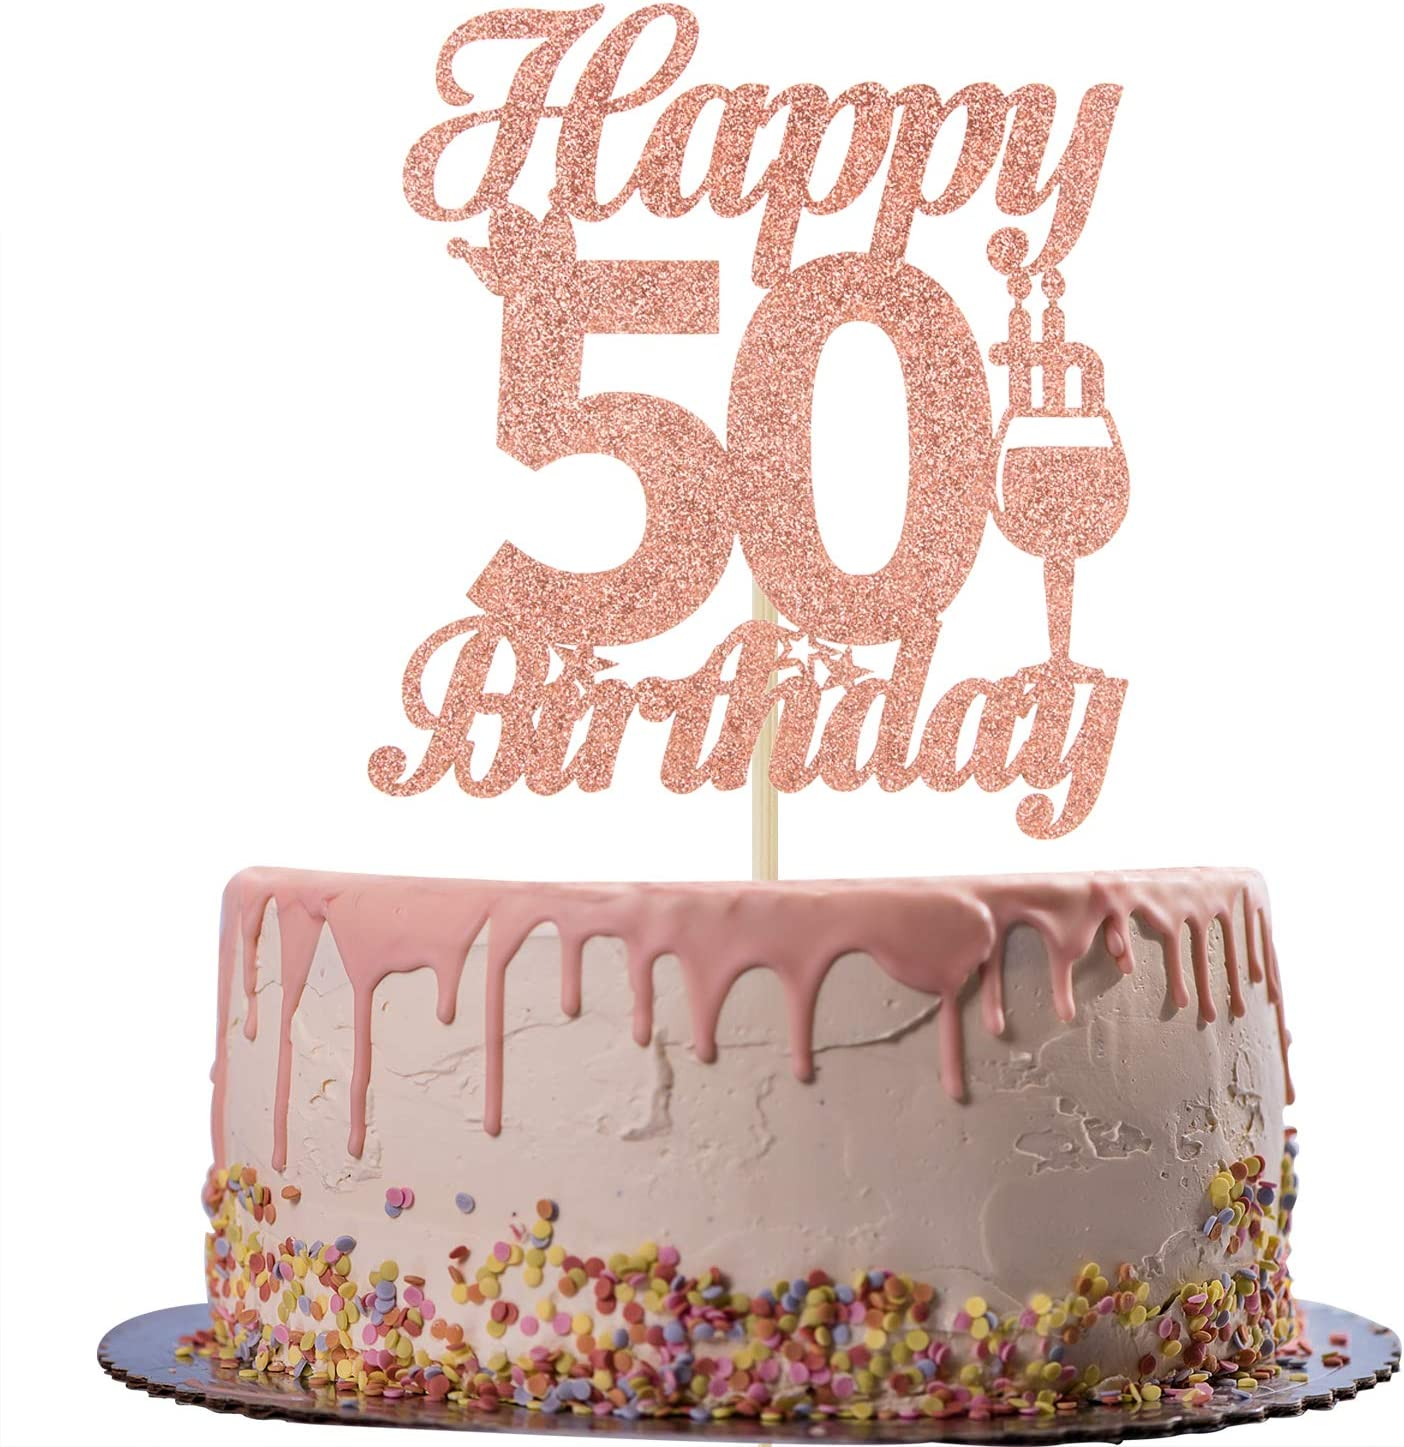 Rose Gold Glitter Happy 50th Birthday Cake Topper - Cheers to 50 Years Old Cake Decor - 50th Birthday/Anniversary Party Decoration Supplies